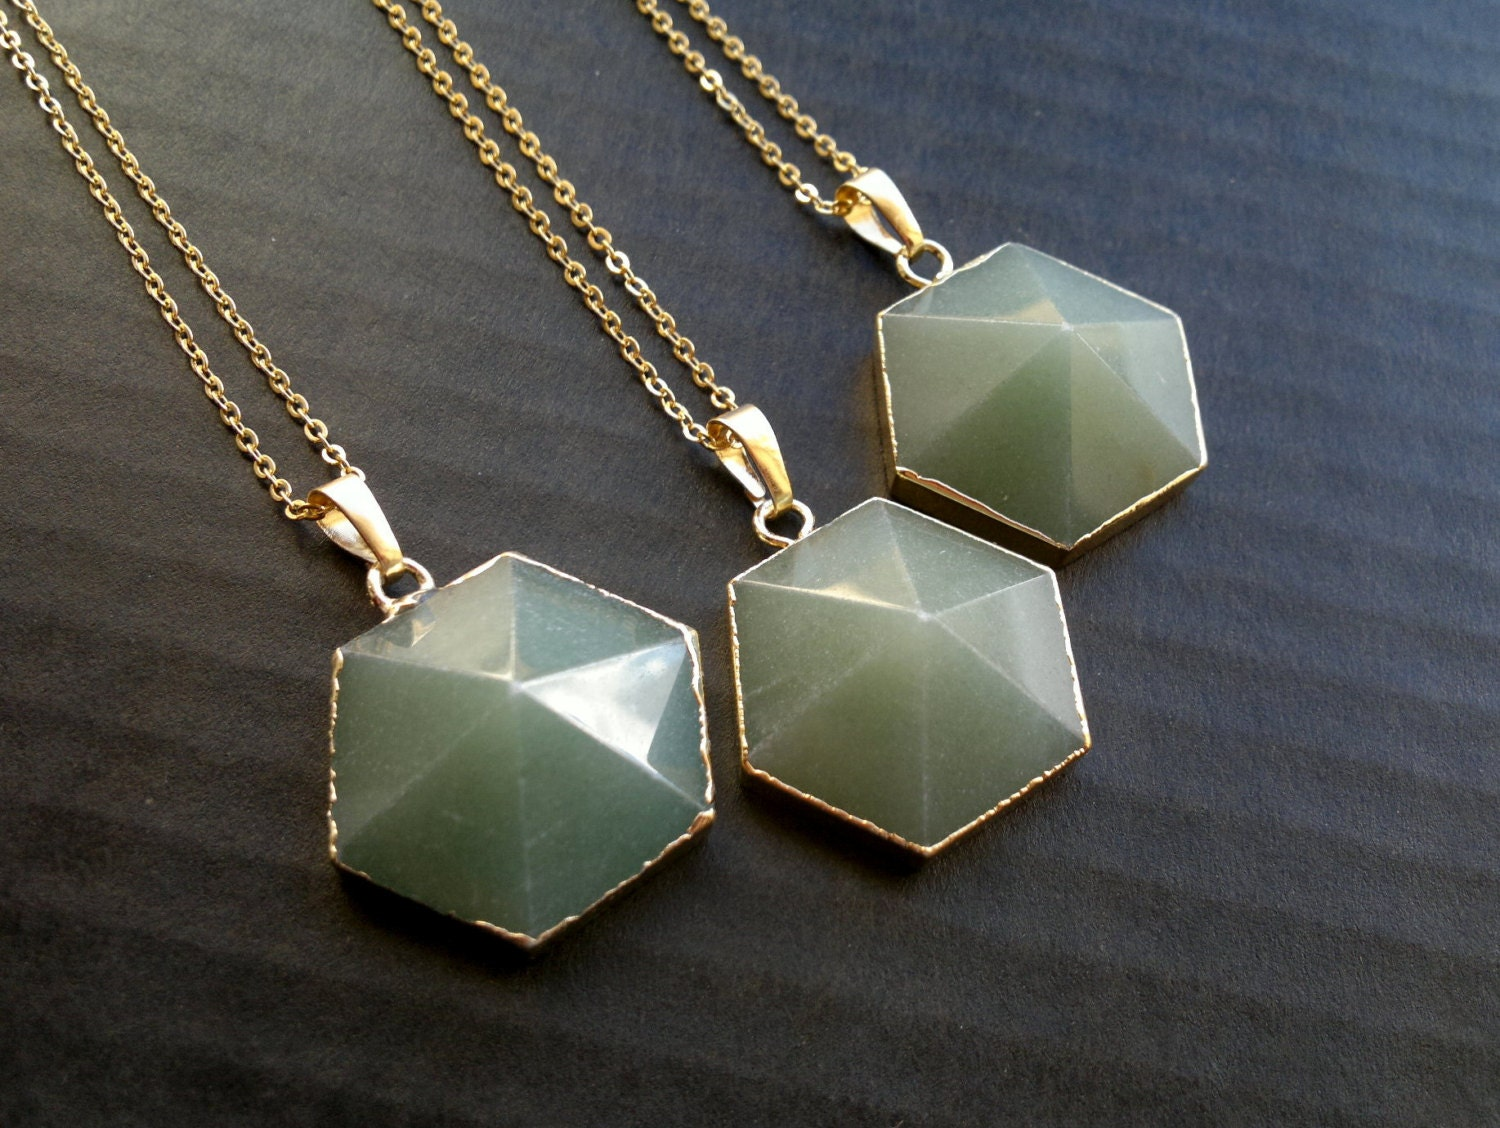 Clearance Aventurine Necklace Stone Pendant Necklace Hectagon. Classique Watches. Calvin Klein Watches. Platinum And Rose Gold Mens Wedding Band. Skin Watches. Graziano Necklace. Cleo Pendant. Silver Diamond Bangle Bracelet. Canary Diamond Rings